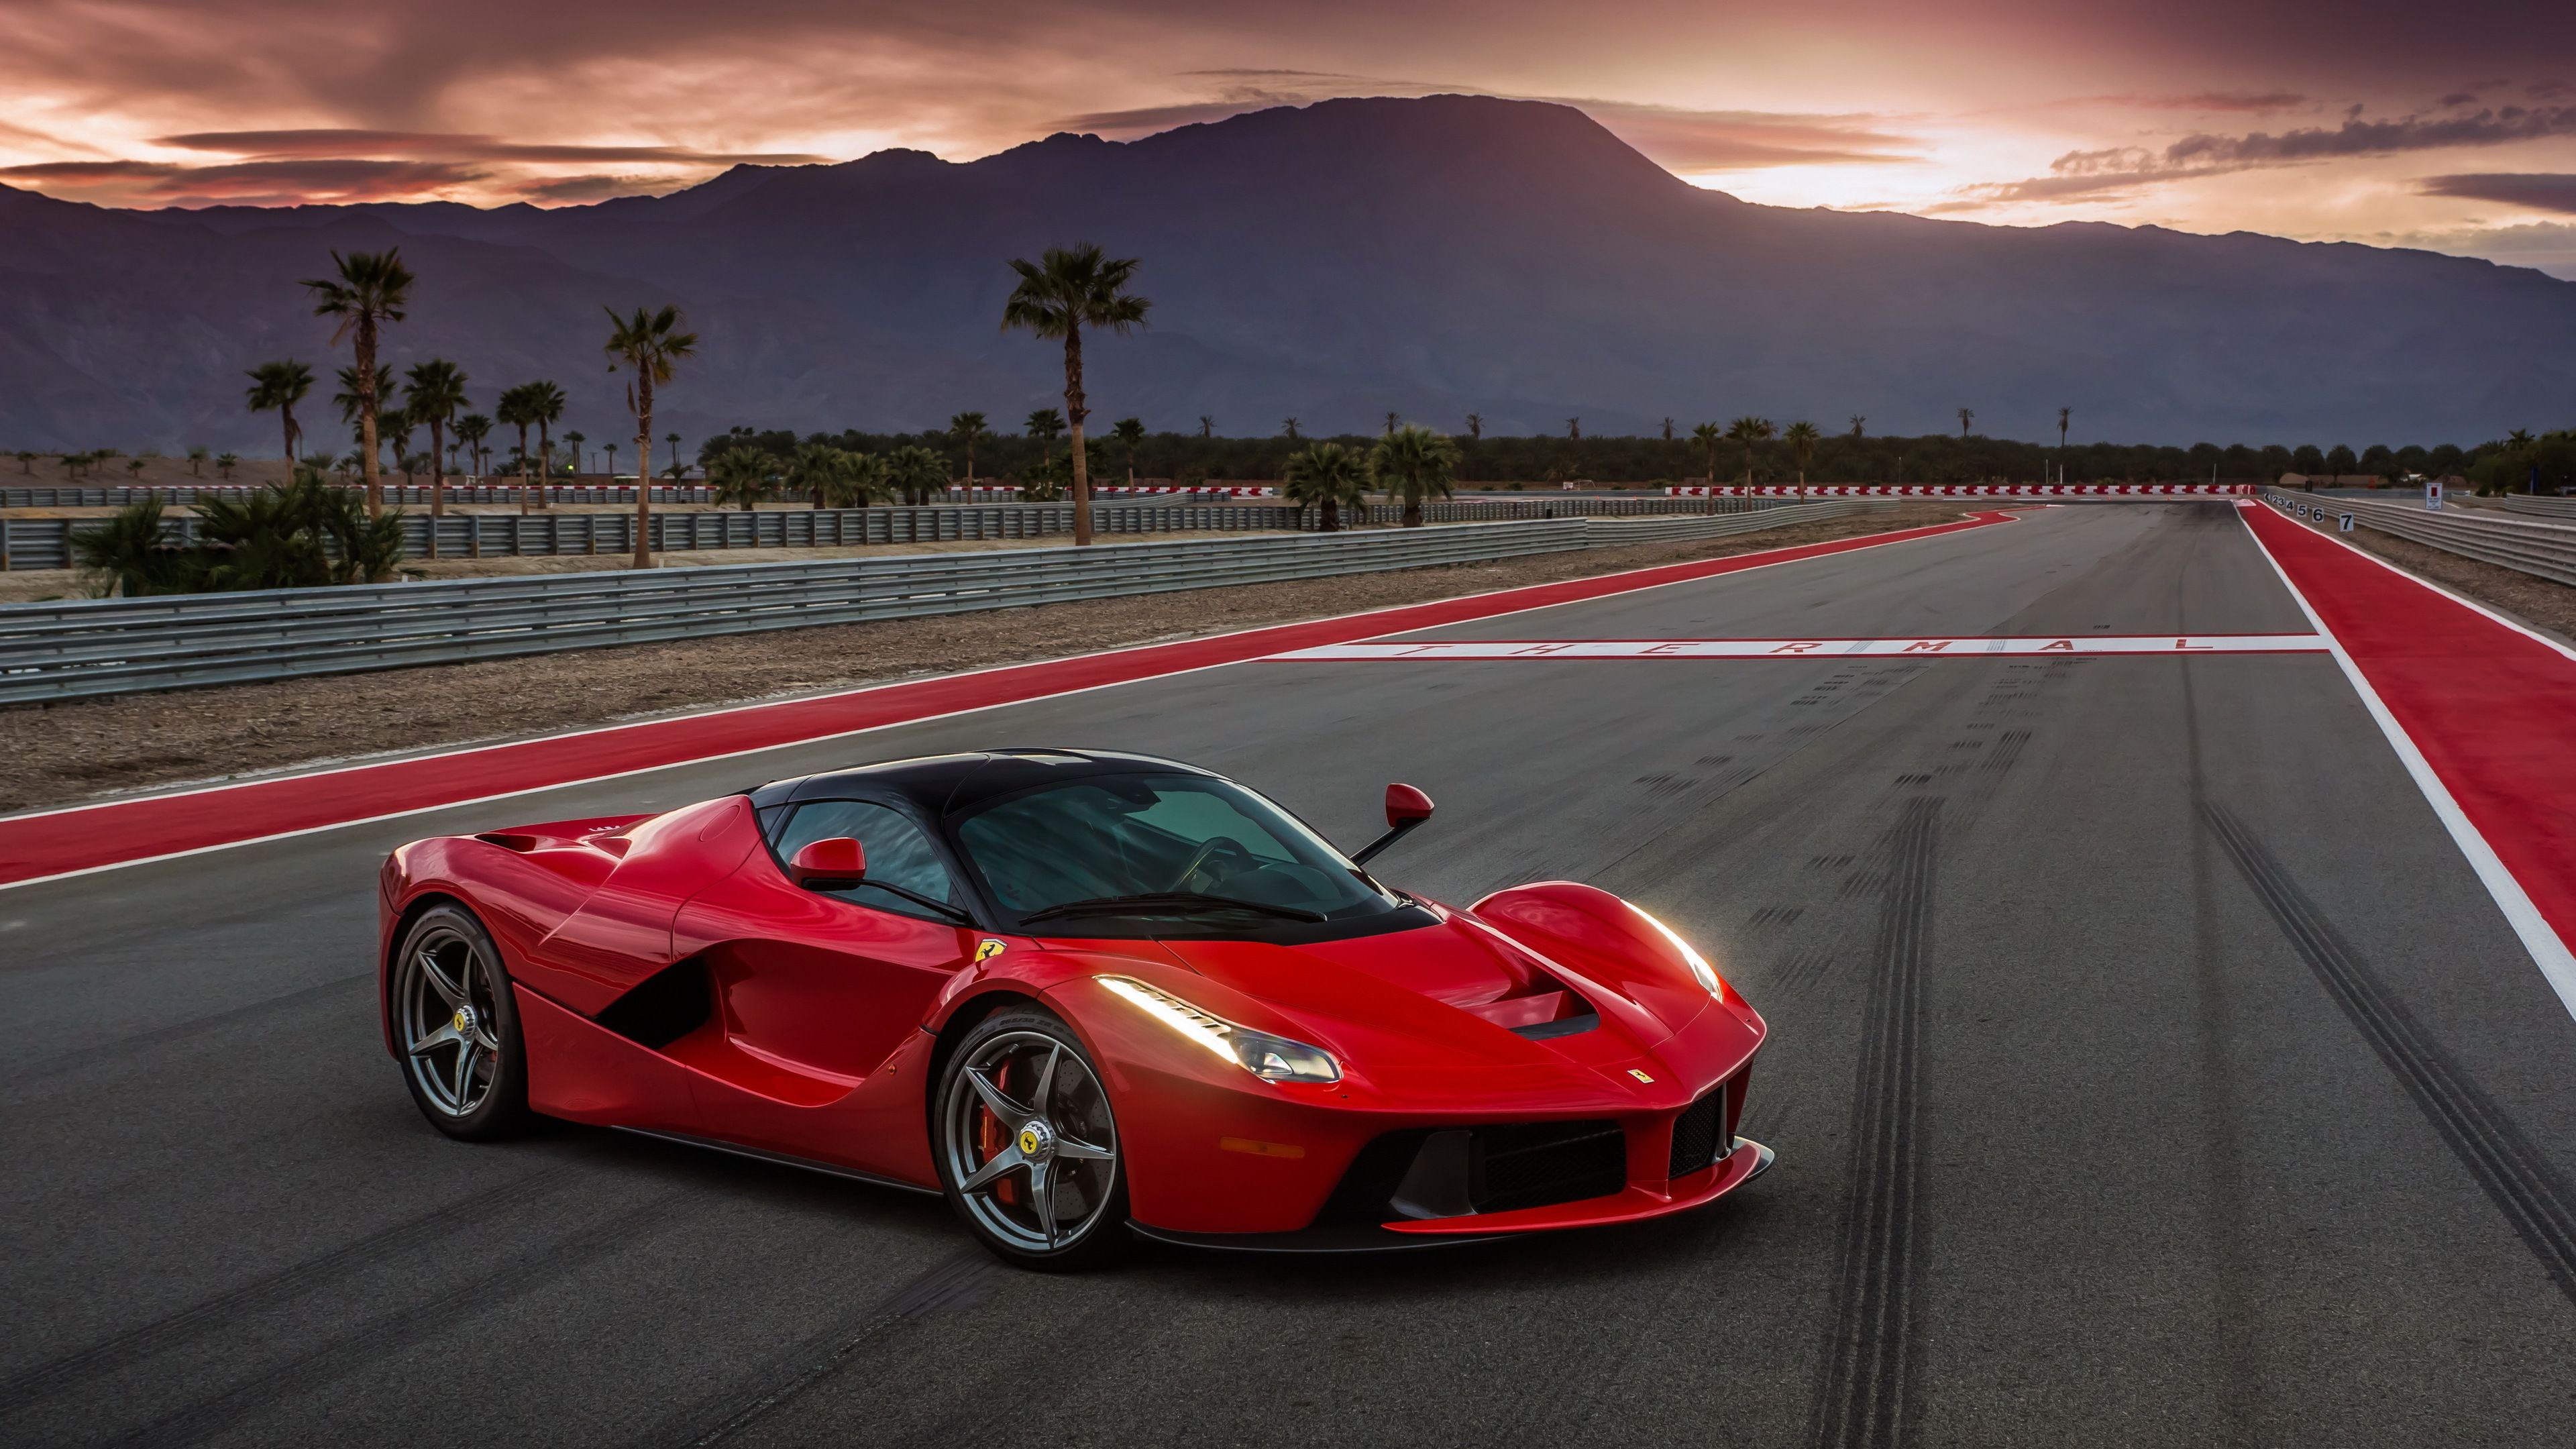 Wallpaper 4k Ferrari Laferrari Cars Wallpapers Ferrari Wallpapers